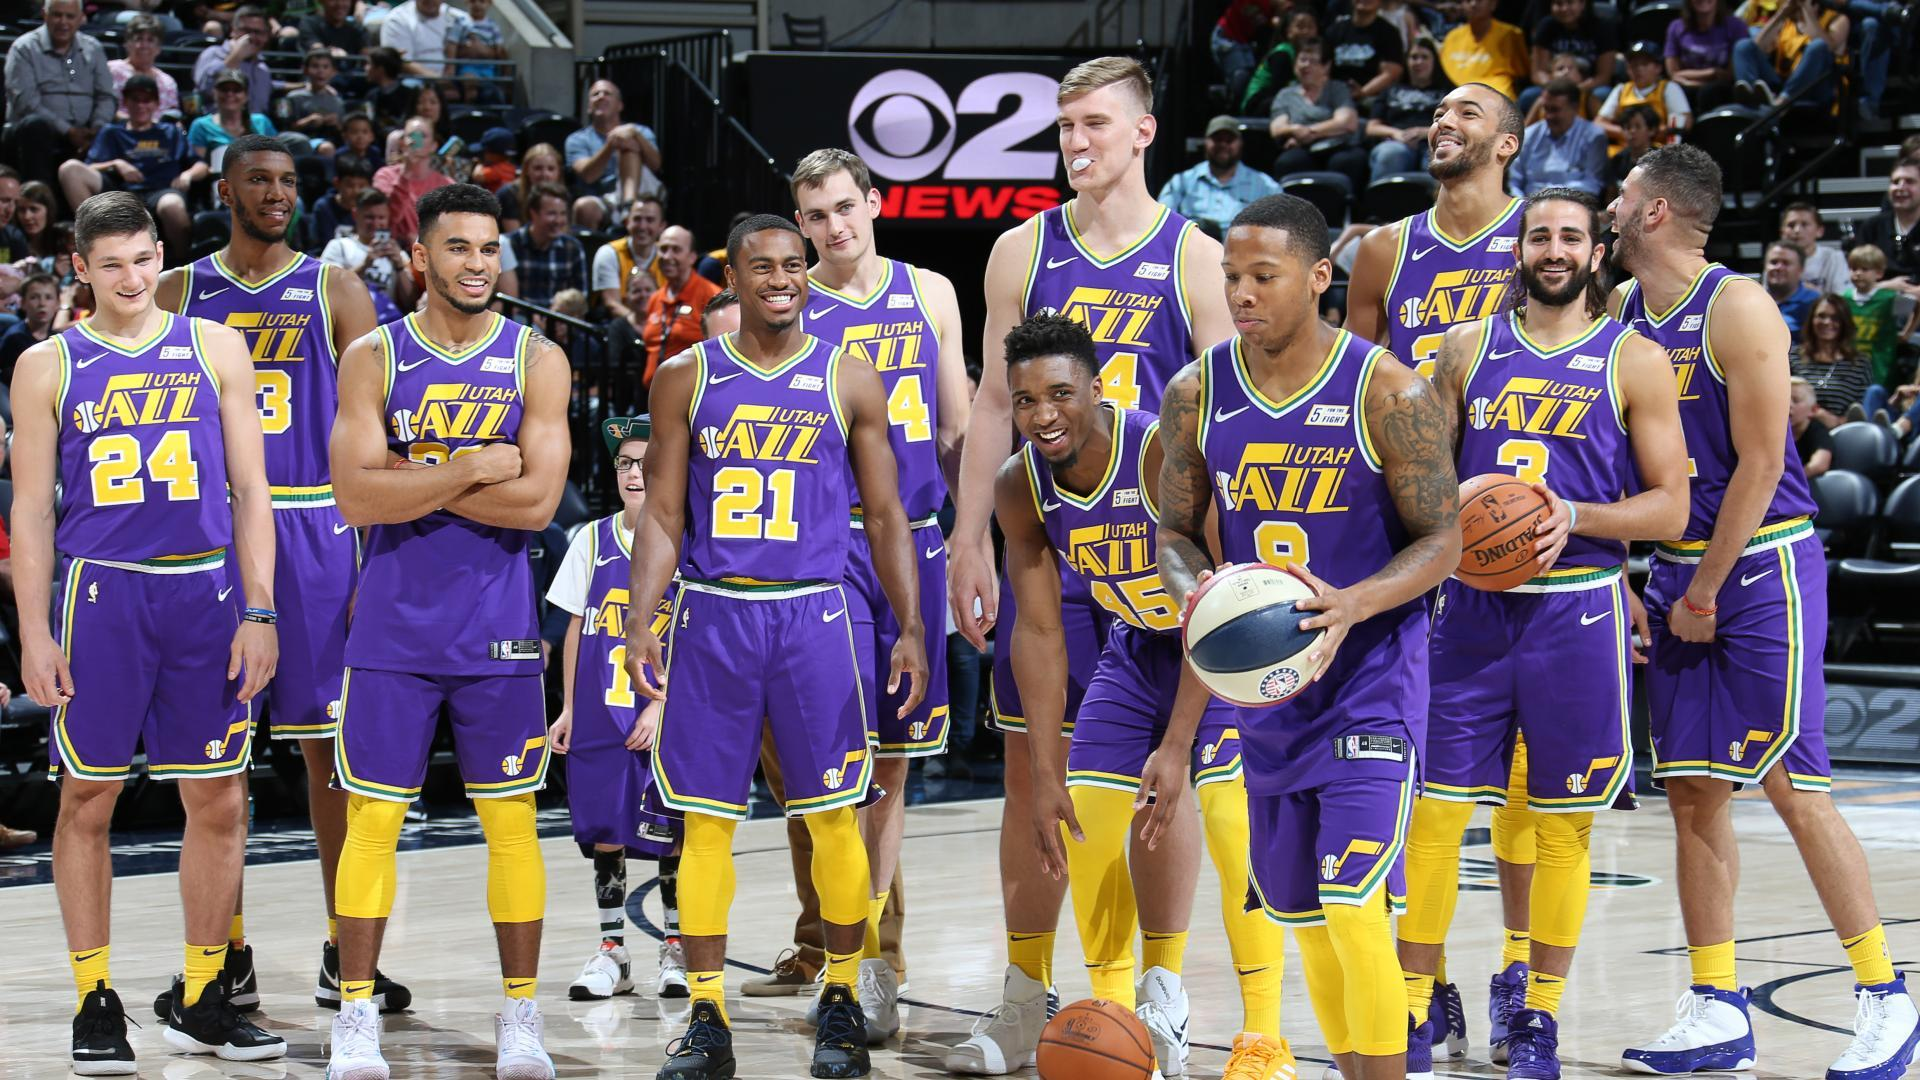 The Jazz show off their Classic Edition uniforms for the 2018-19 season. c23895959